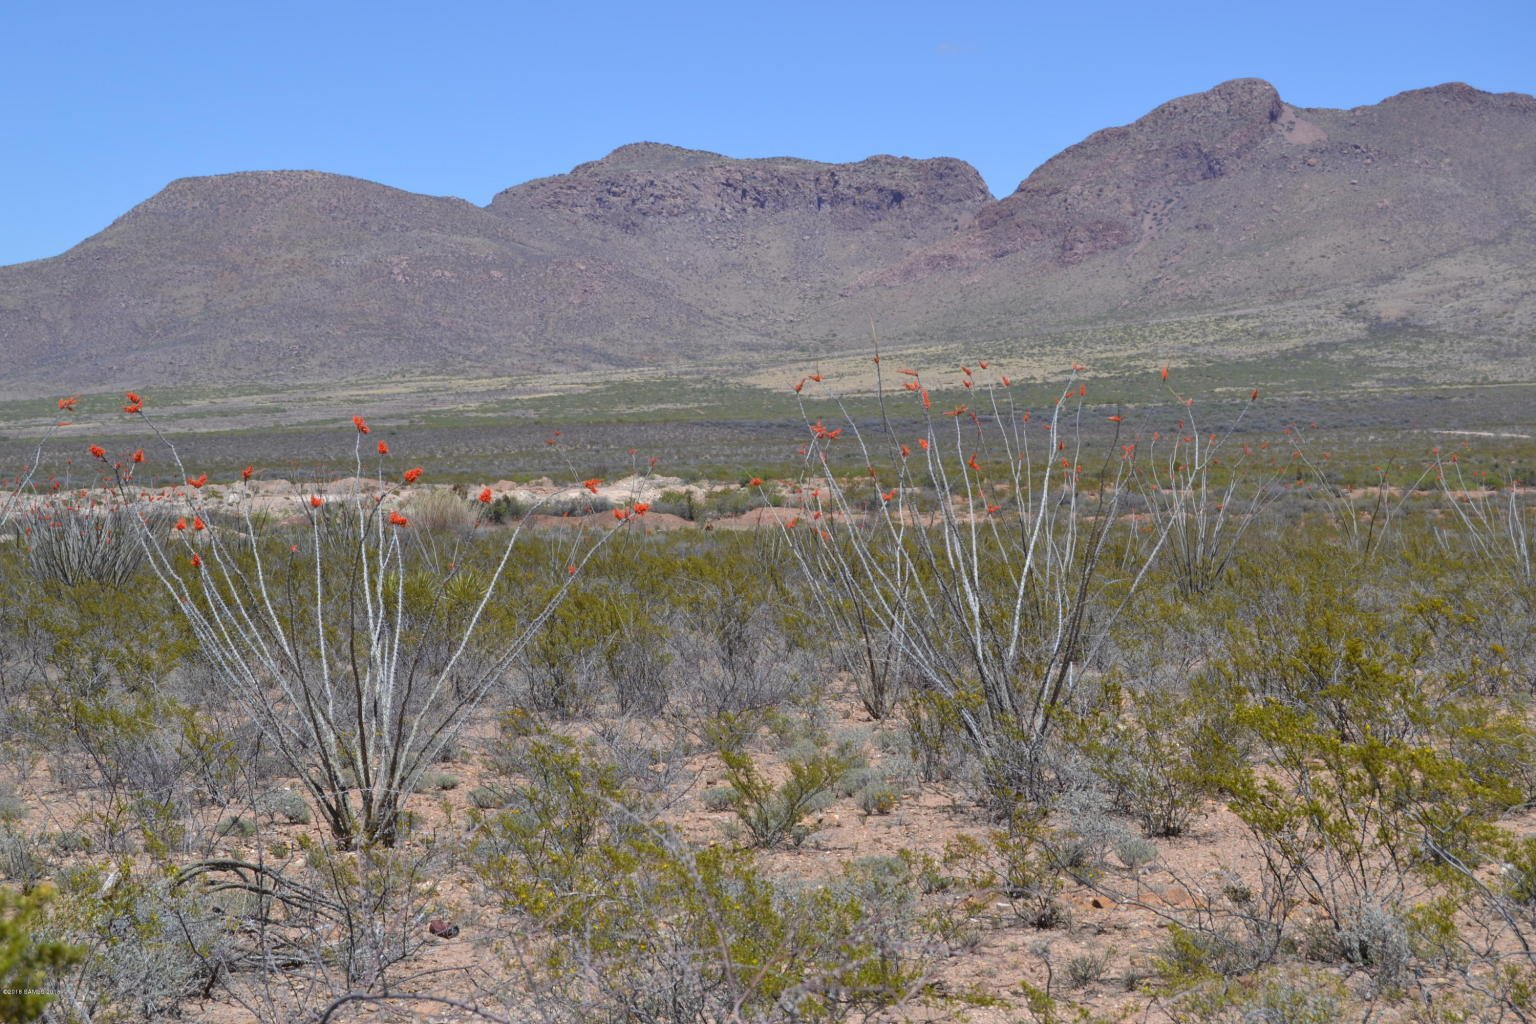 40 Acres for Sale Douglas AZ flowers, cliffs